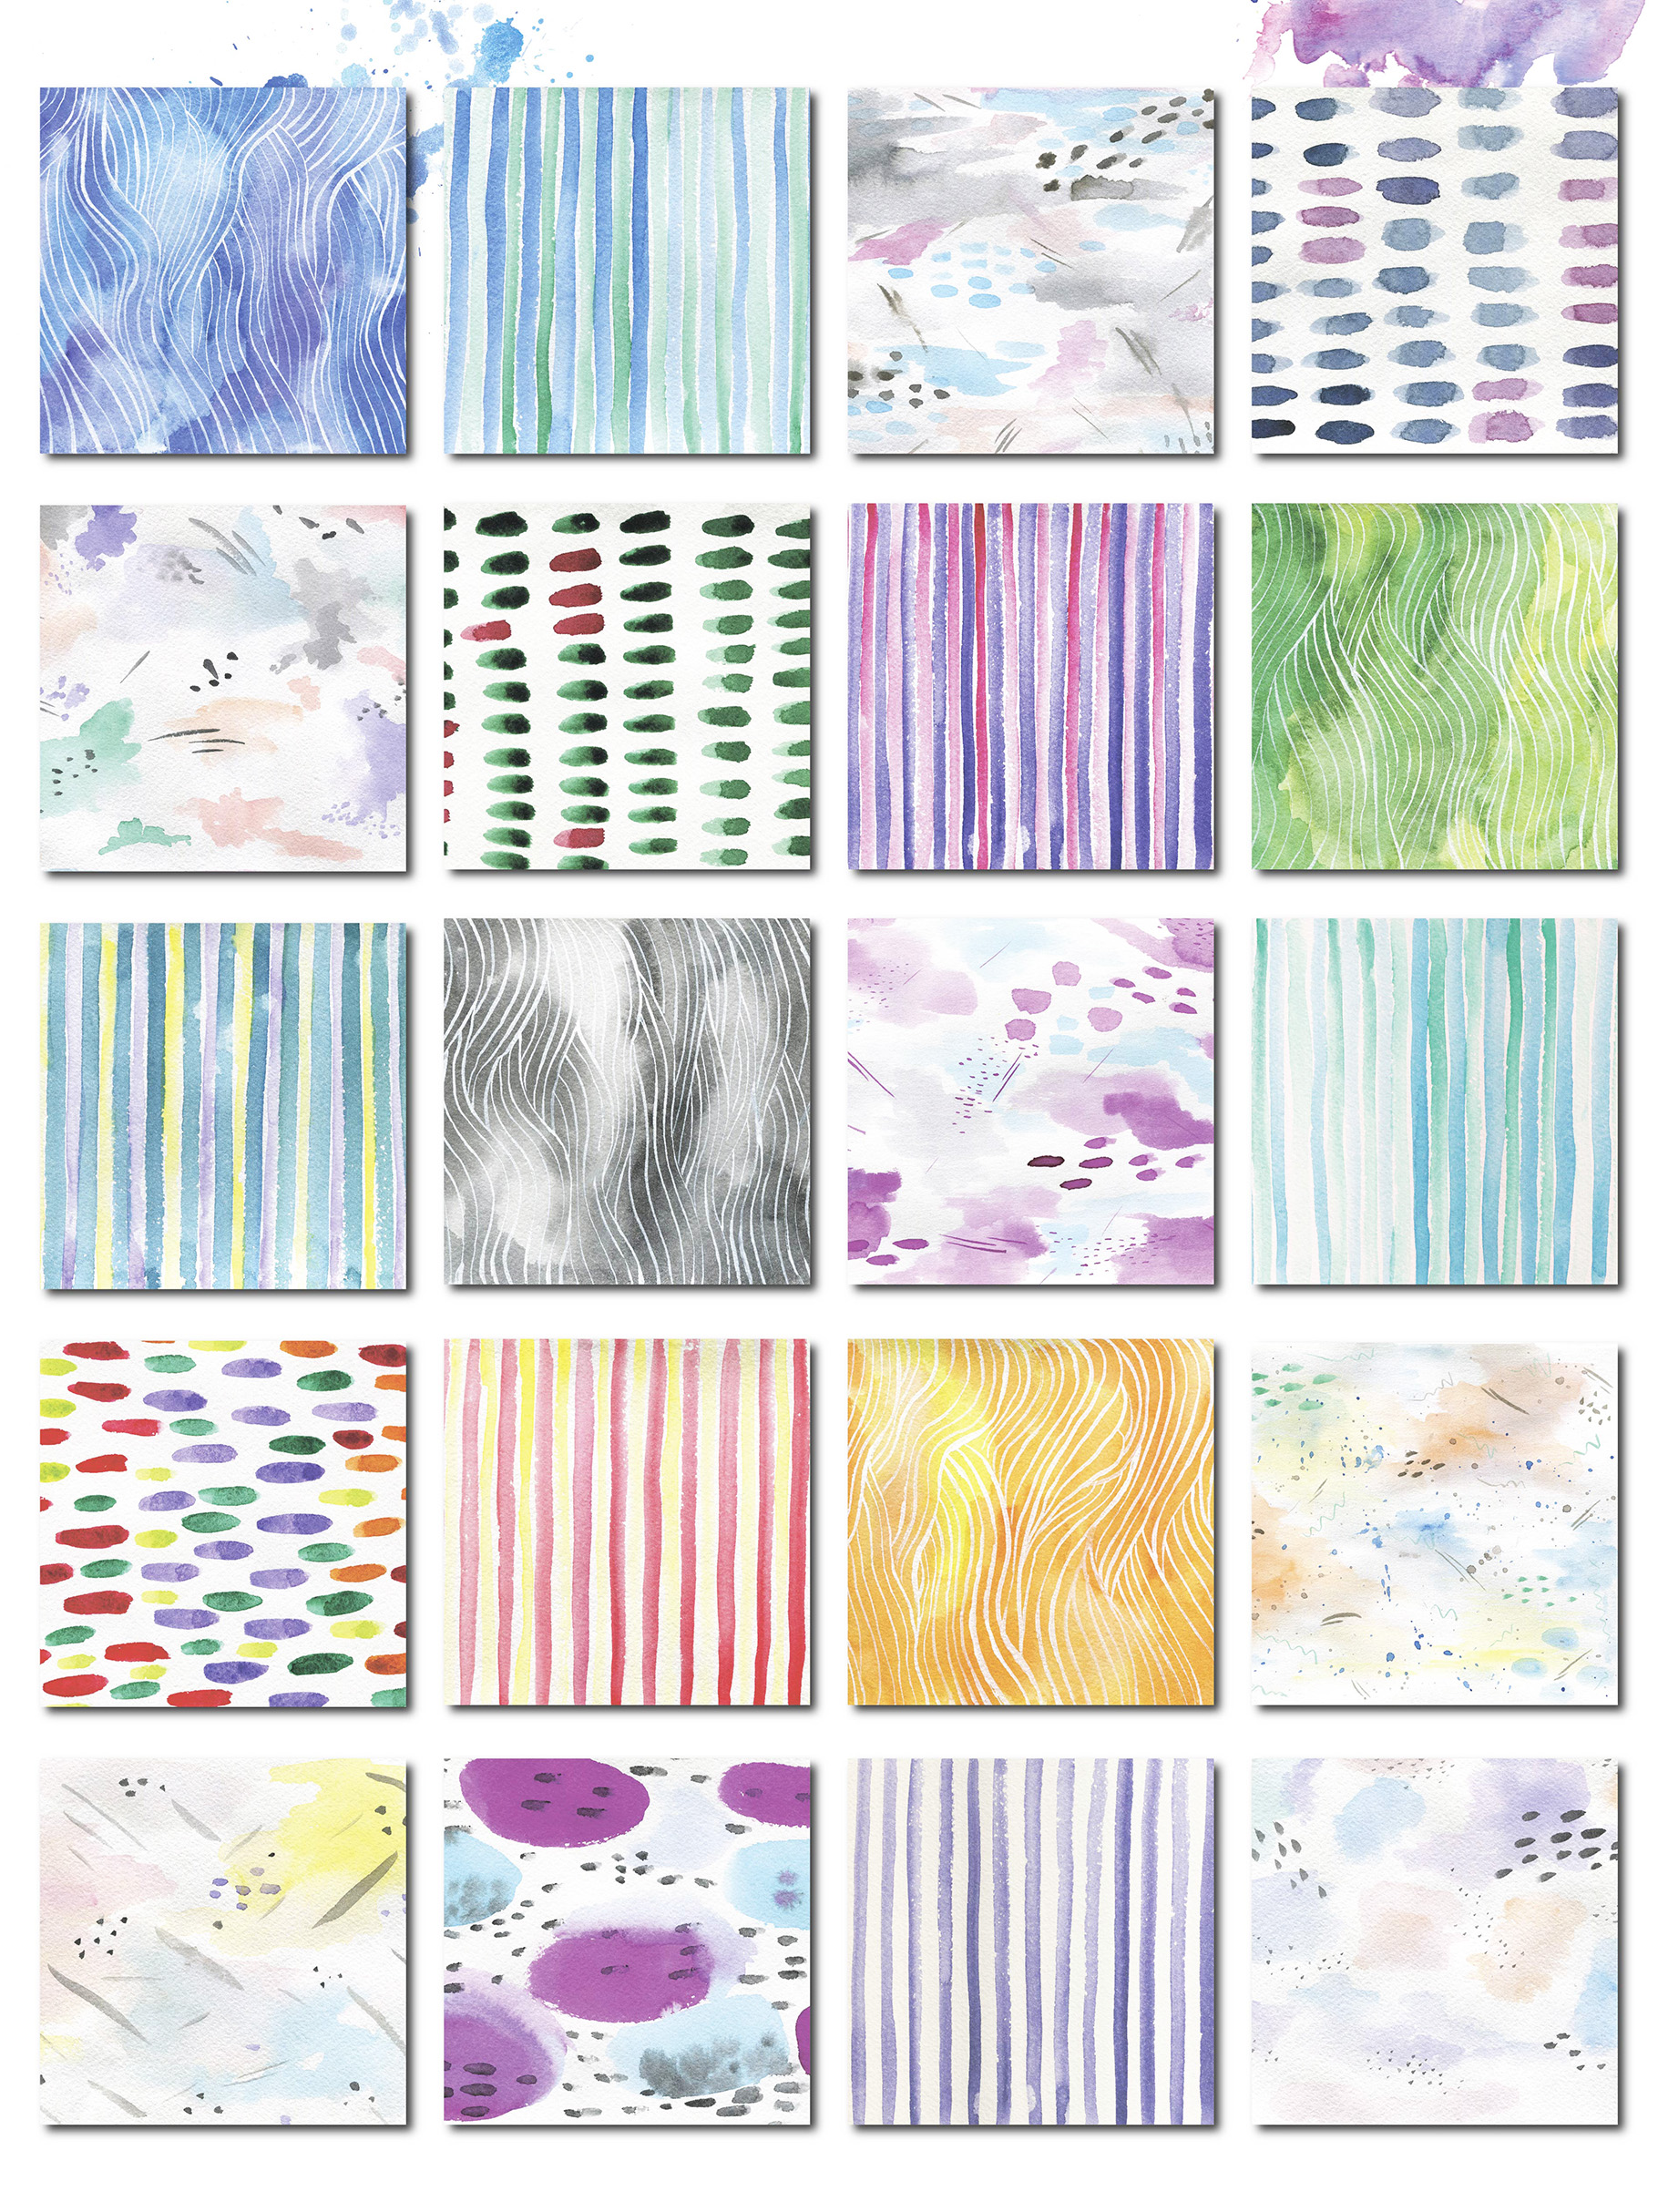 69  Watercolor textures backgrounds! example image 4